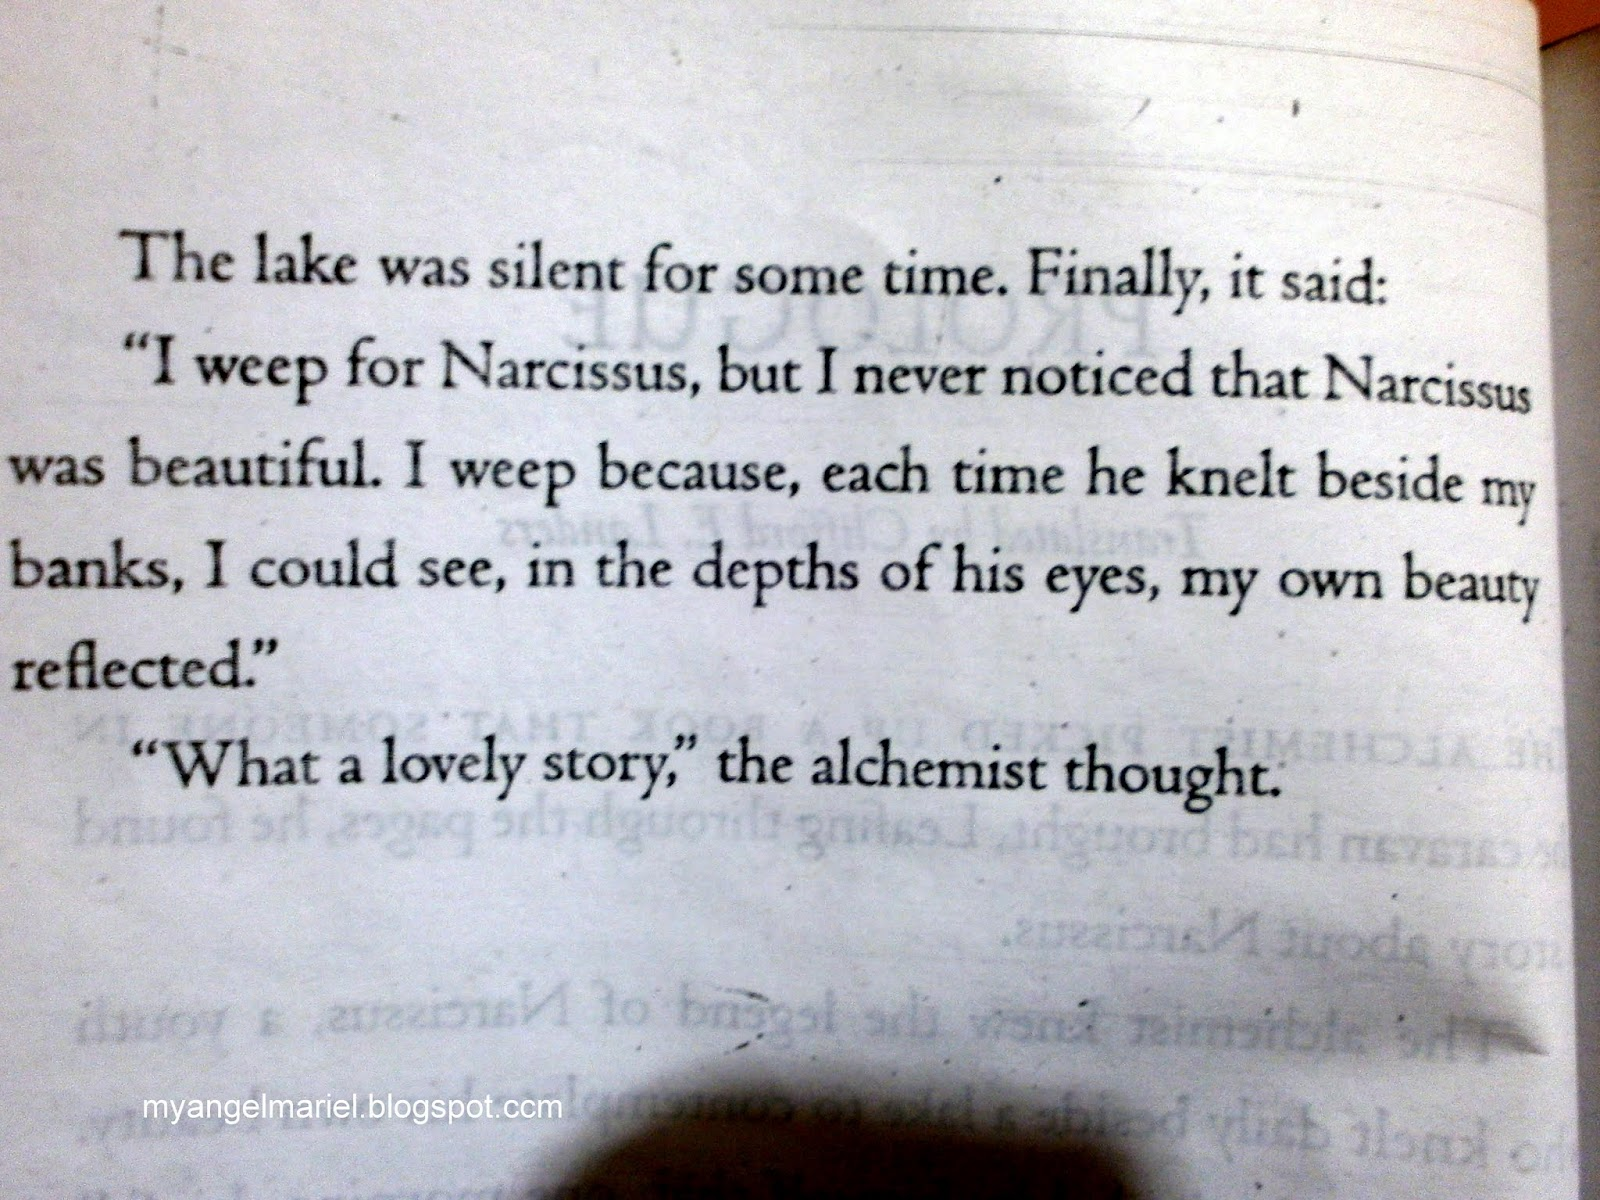 the things i do for love a gift from paulo coelho this last paragraph from the prologue had me interested in the alchemist